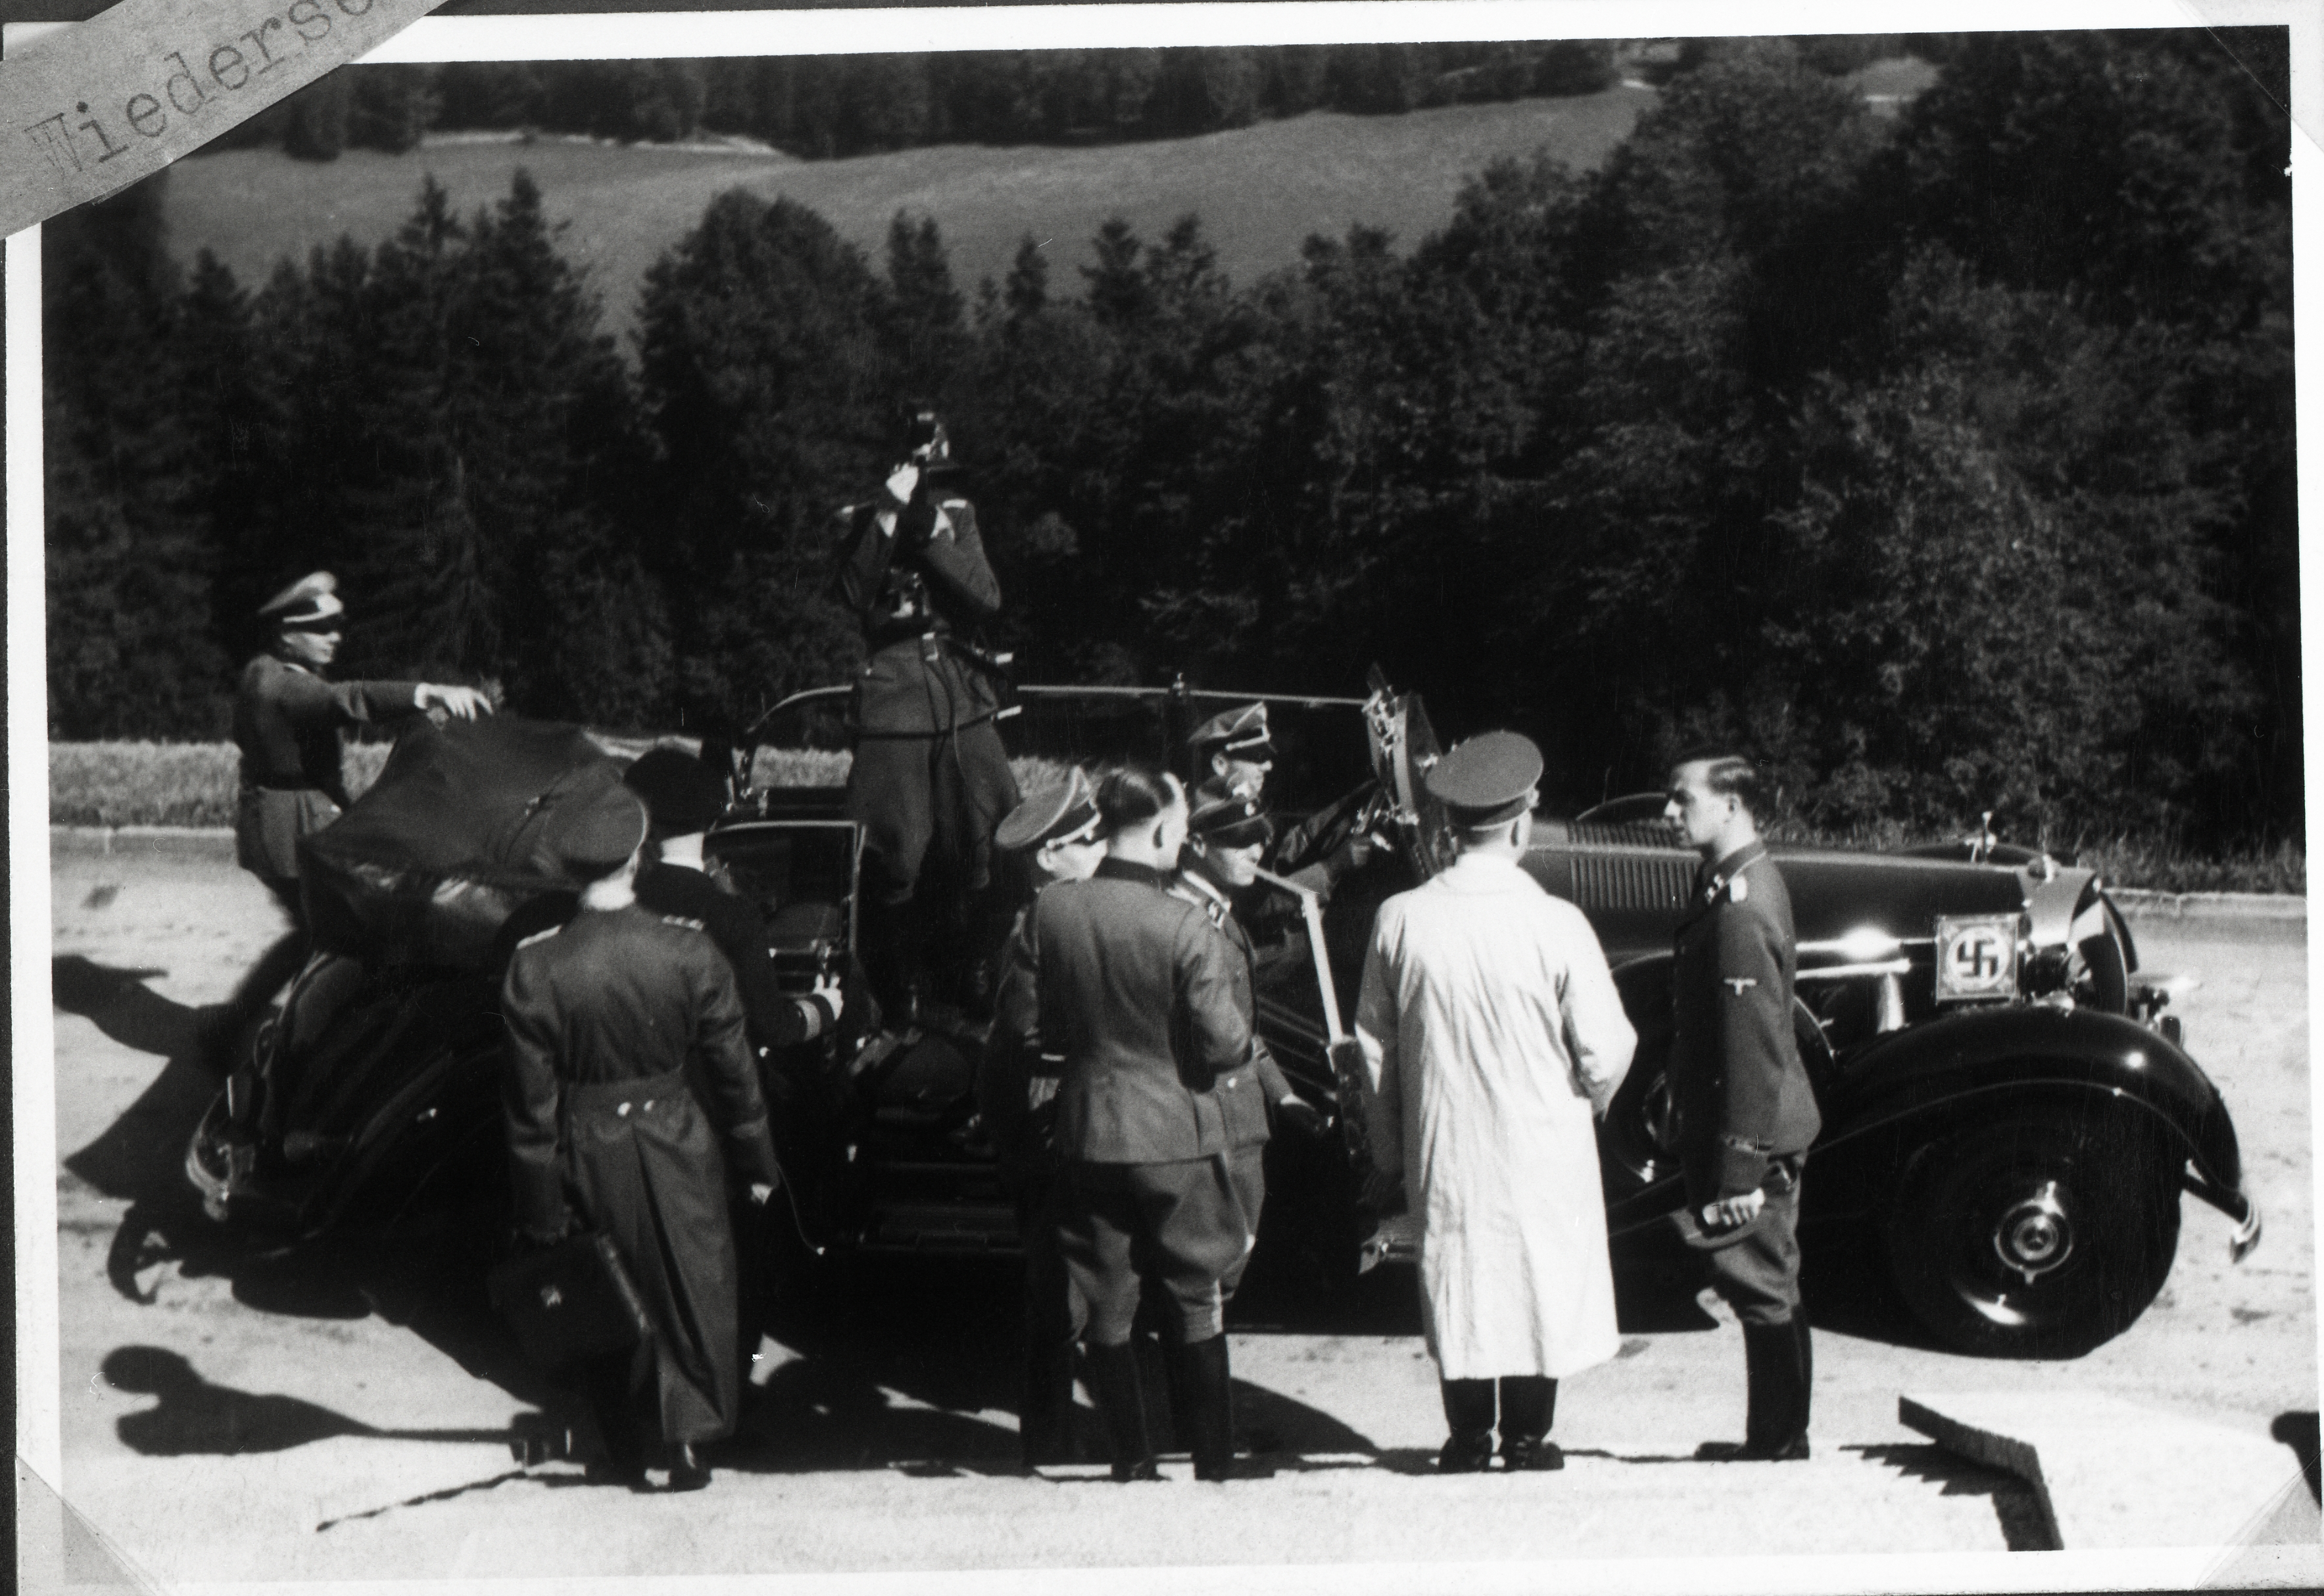 Adolf Hitler before his departure to Berlin, from Eva Braun's albums